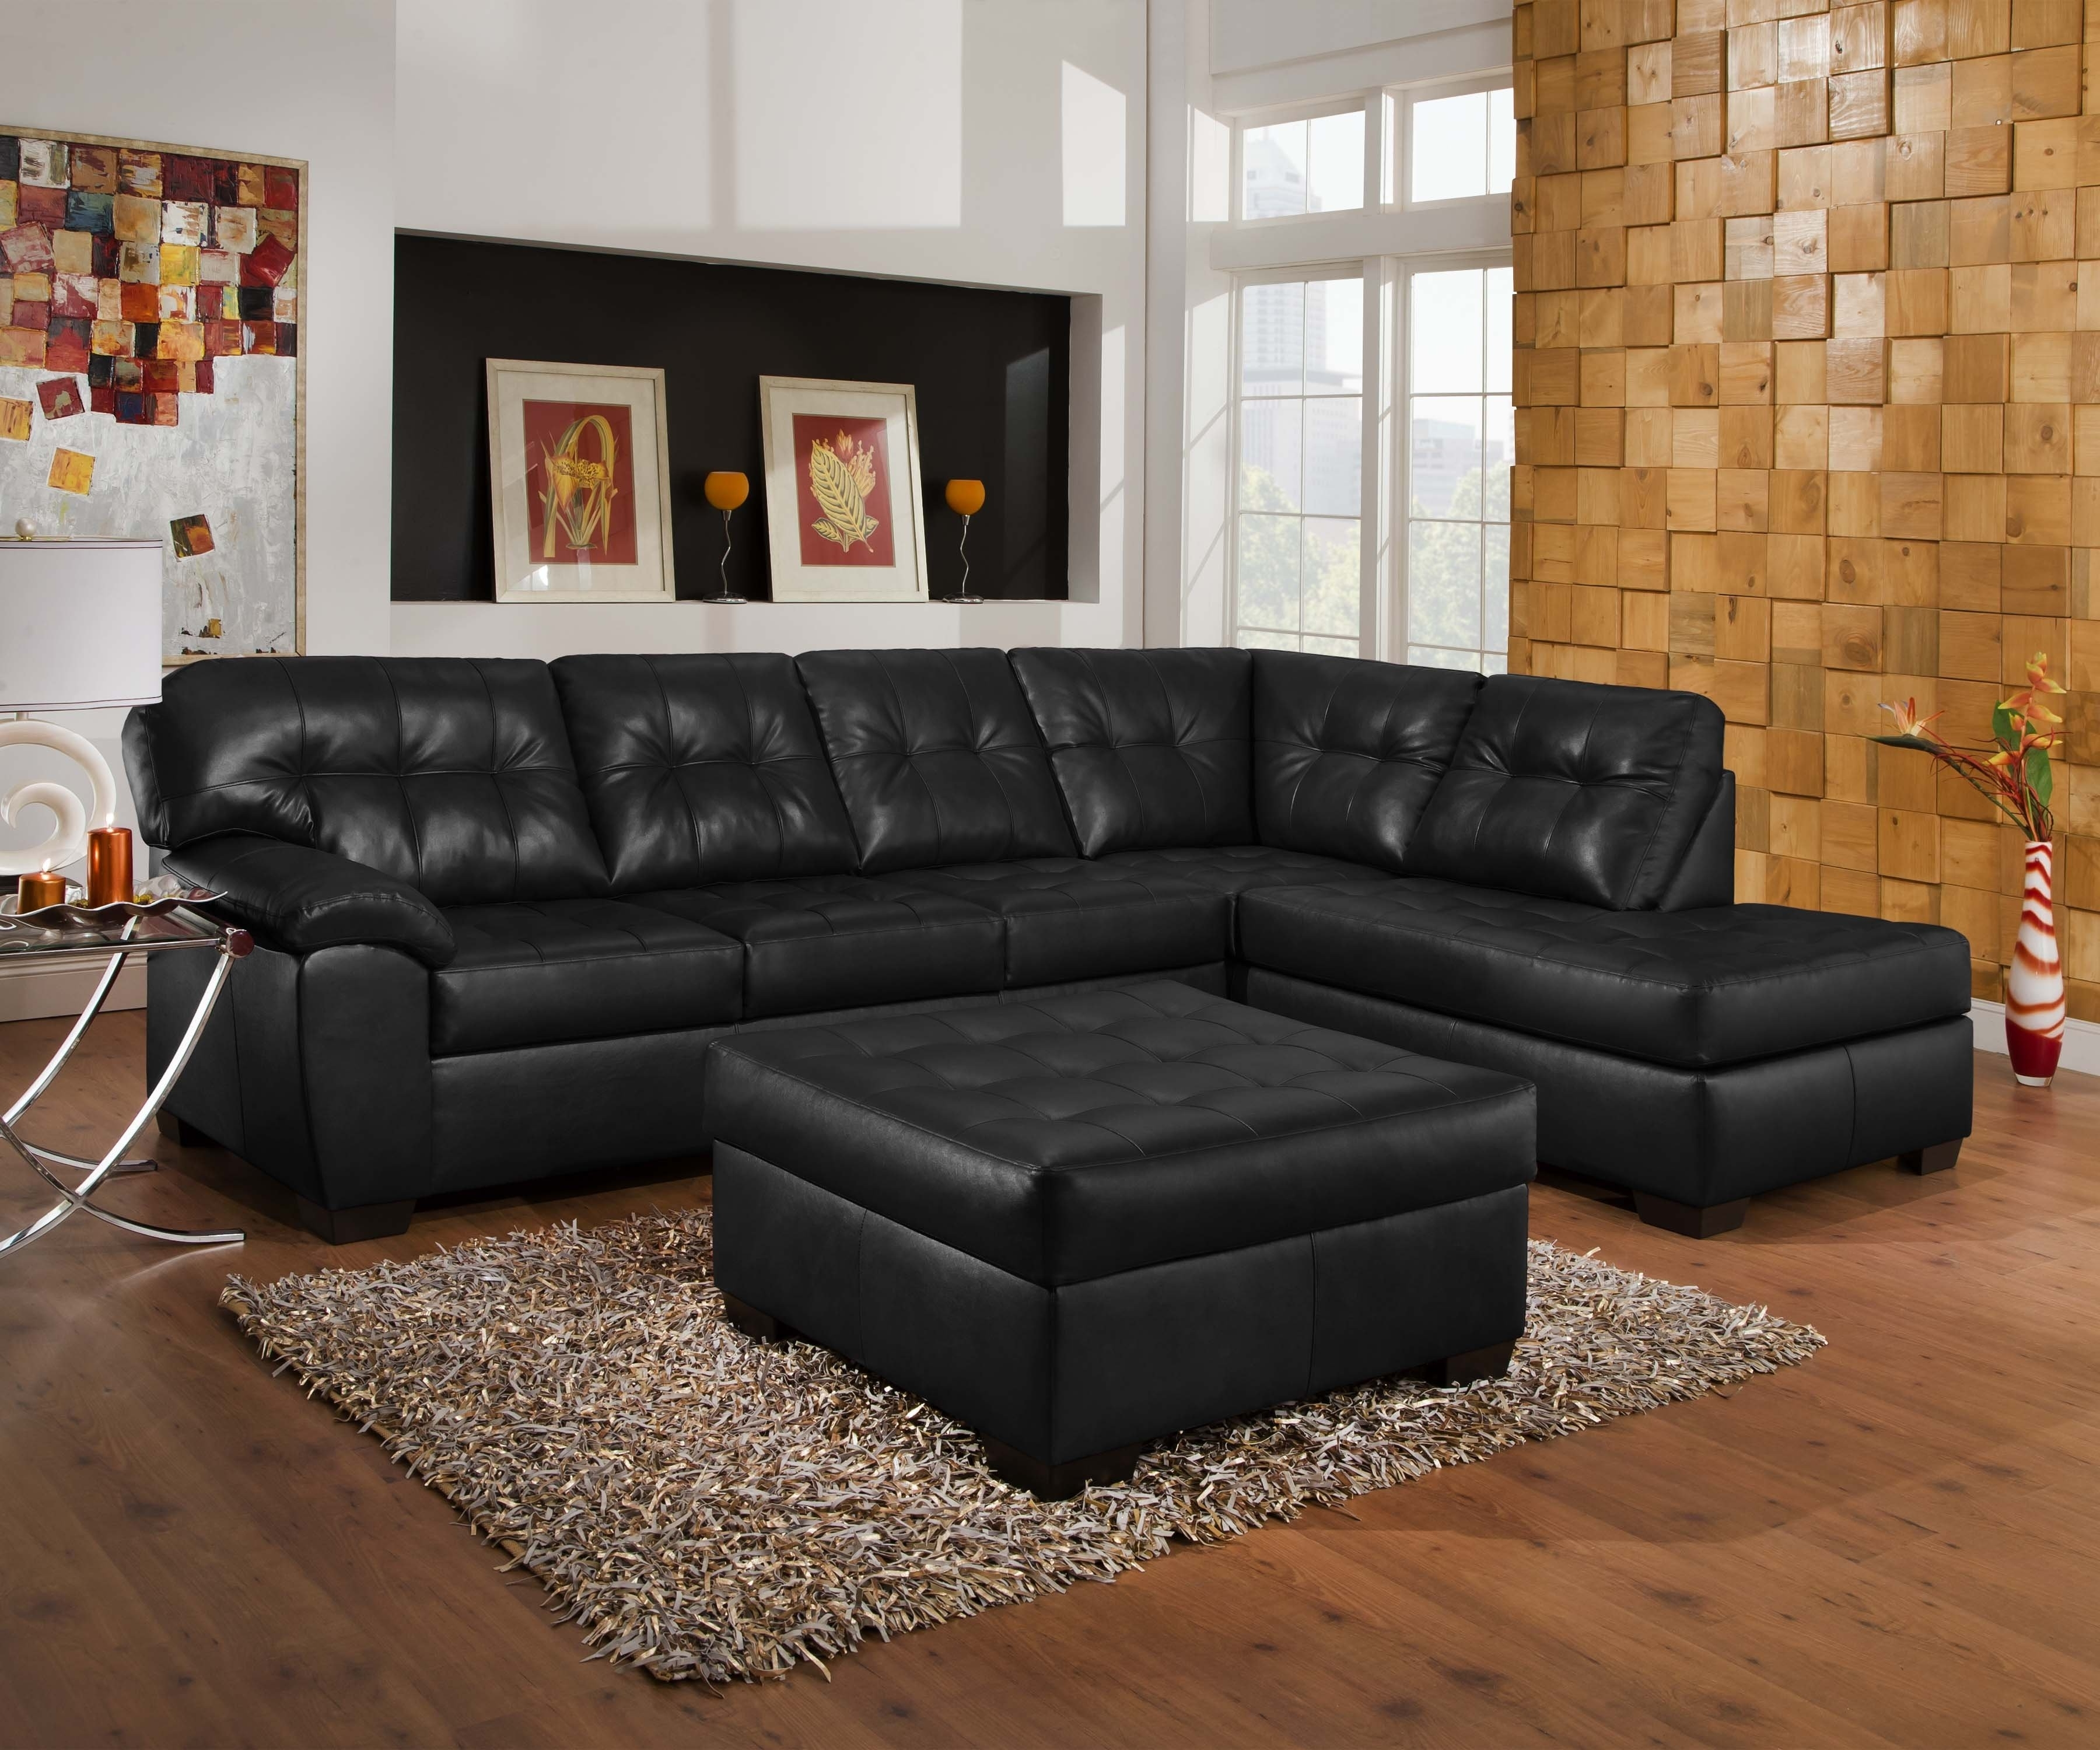 Black Leather Contemporary Sectional Black And White Leather Sofa Intended For Newest Cheap Black Sofas (View 3 of 20)